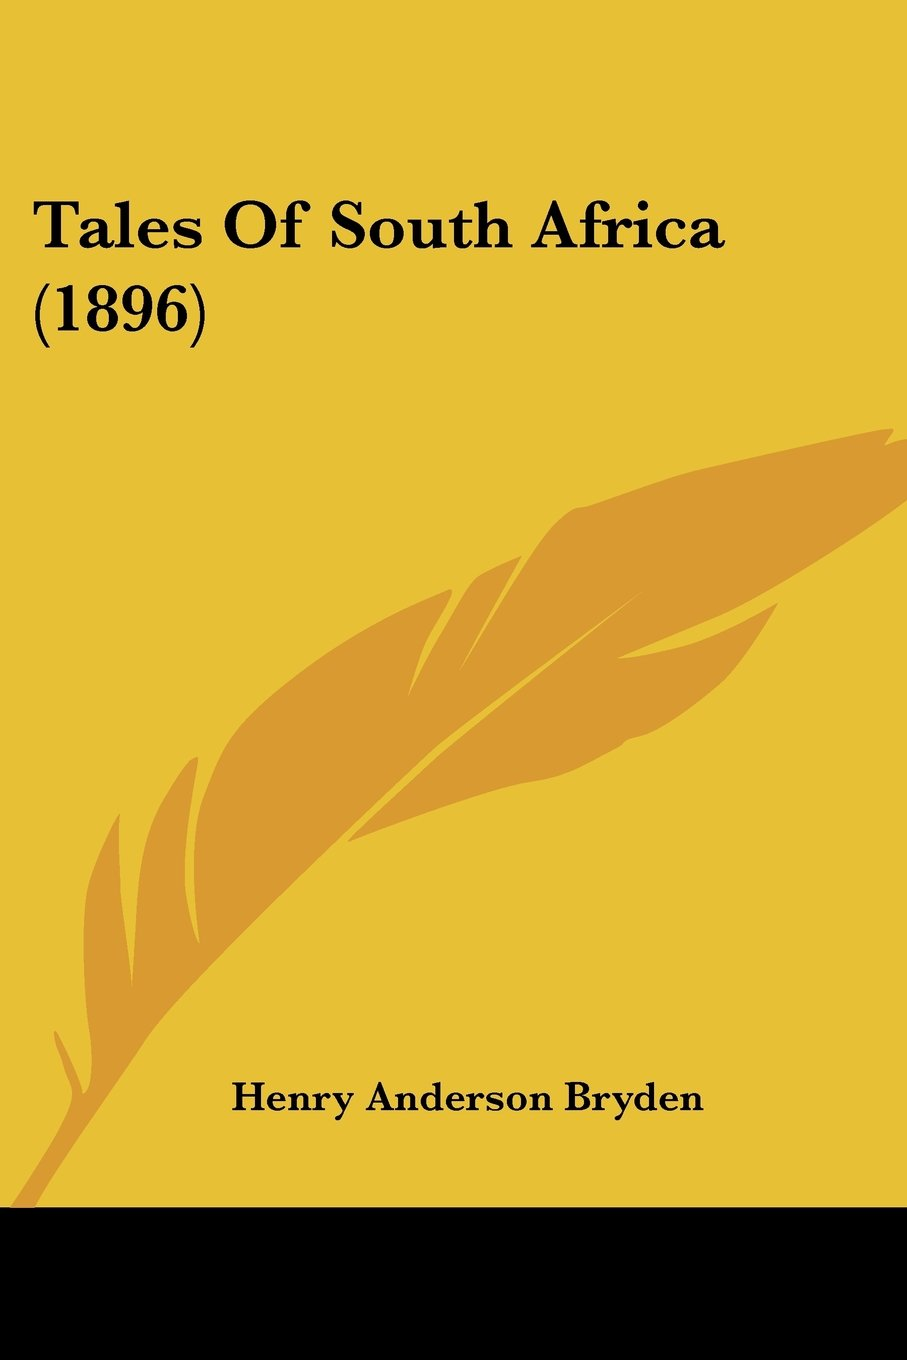 Download Tales Of South Africa (1896) PDF